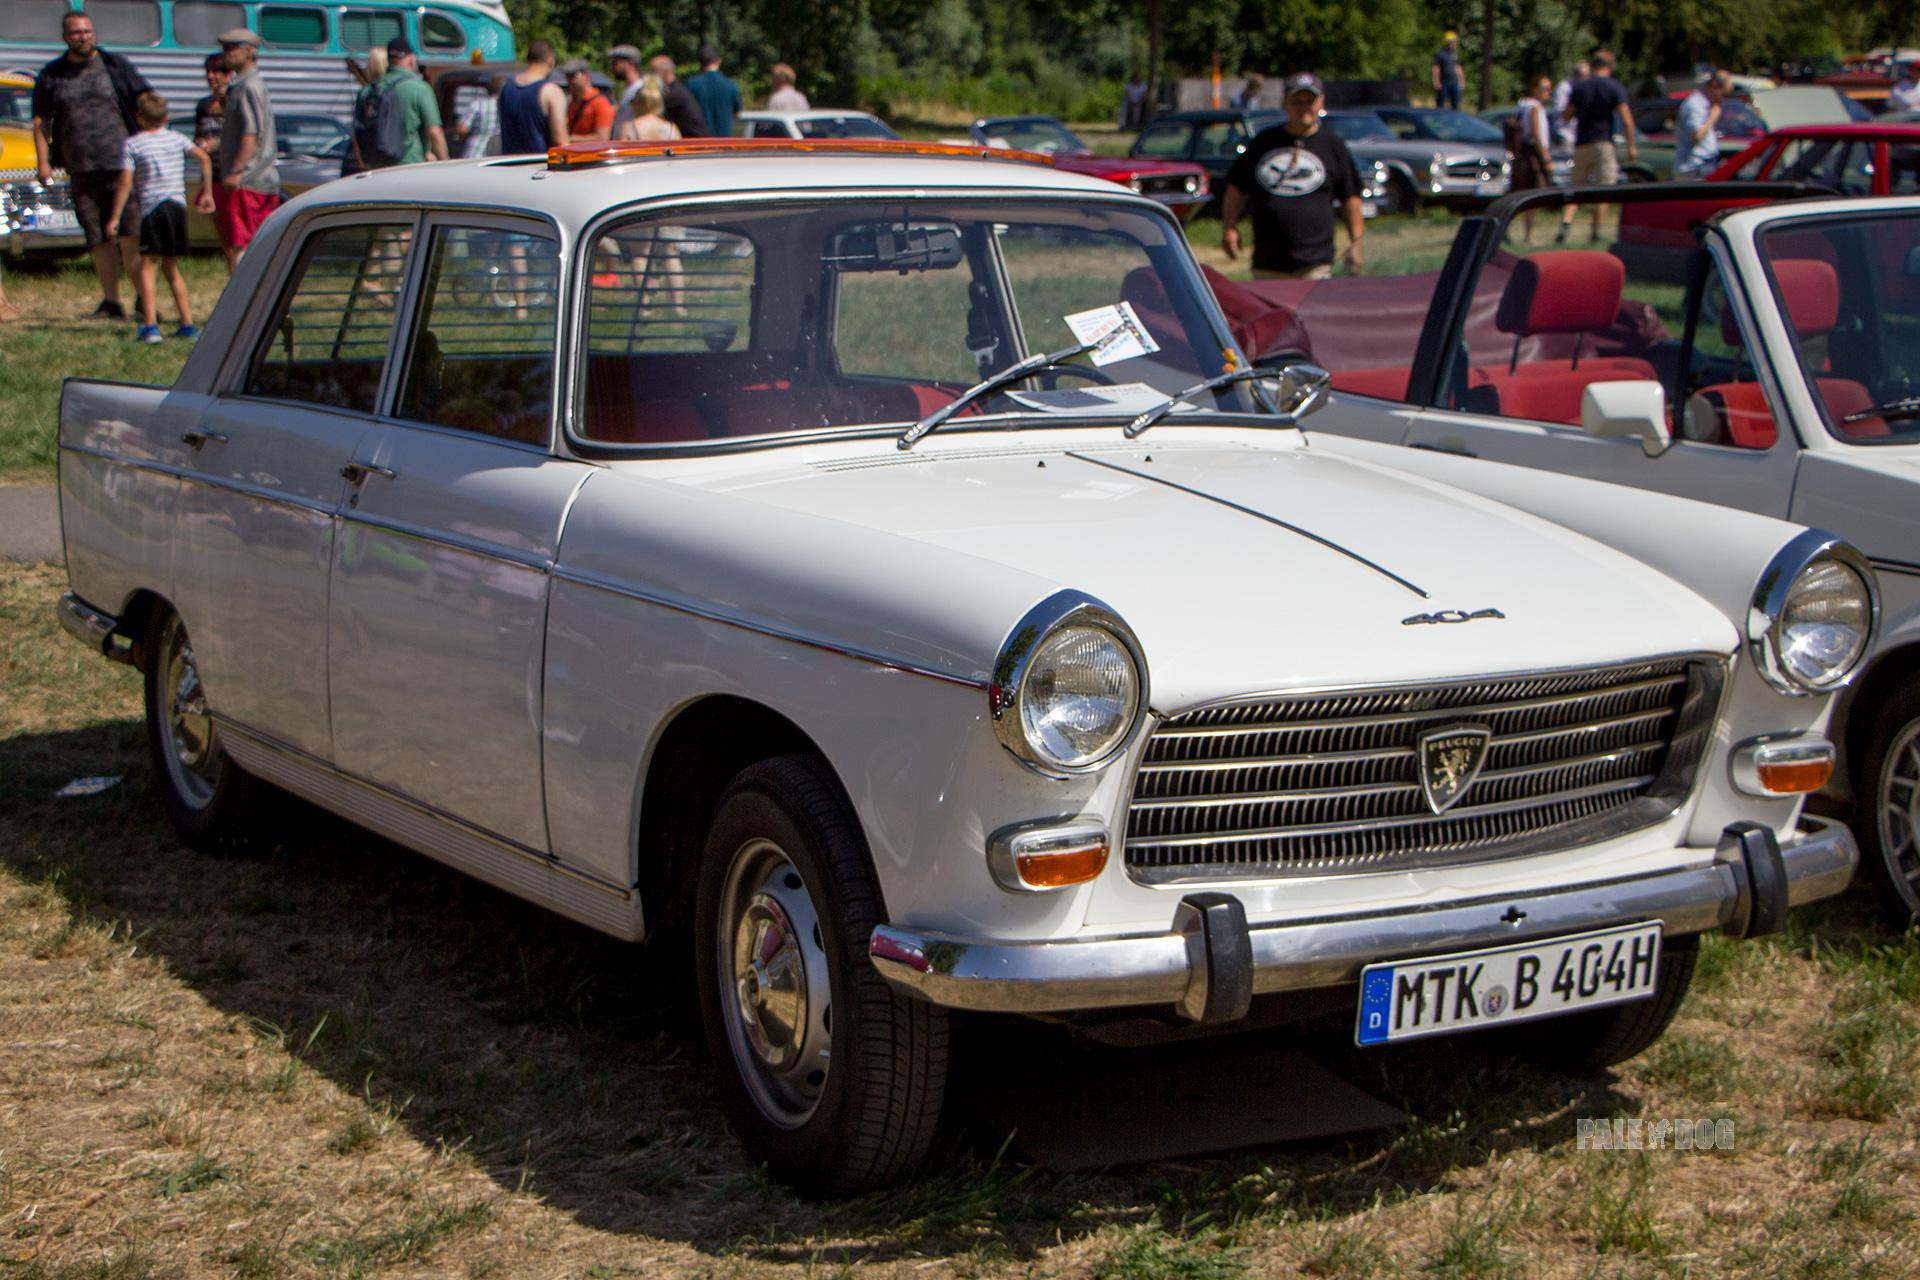 1967 Peugeot 404 Berline Front View 1960s Paledog Photo Collection